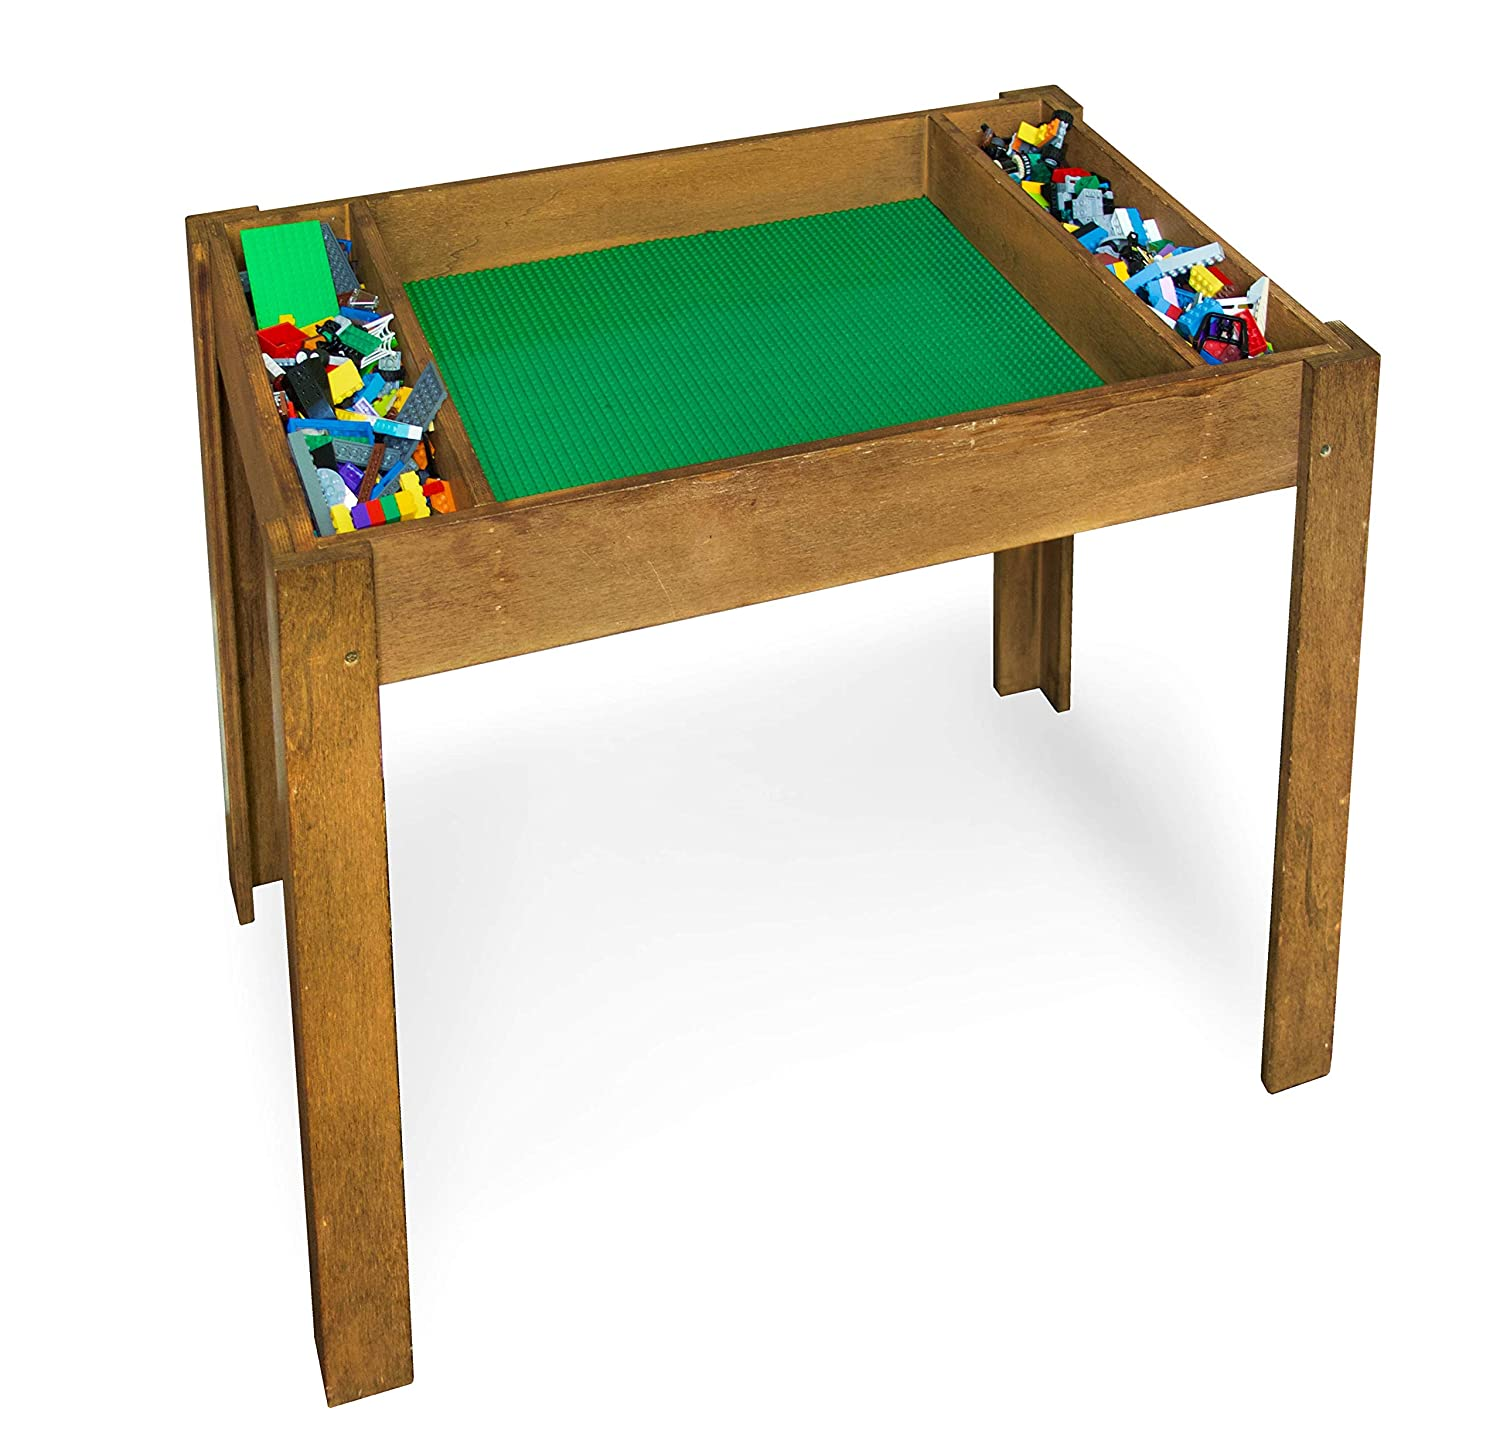 Brick Nation Lego Compatible Table with Storage for Older Kids